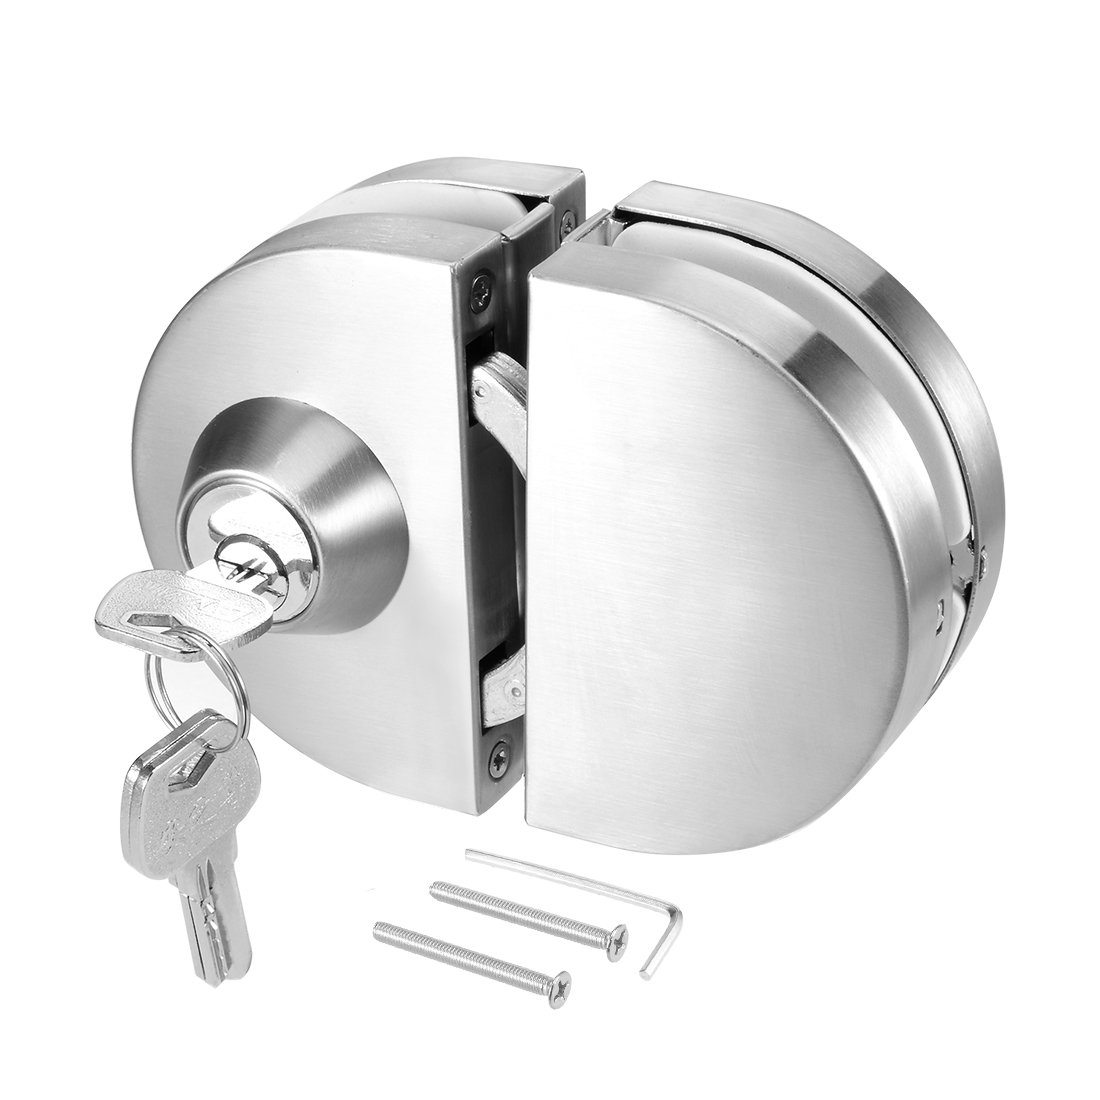 10mm-12mm Glass Door Double Latch Lock Stainless Steel Brushed Finish